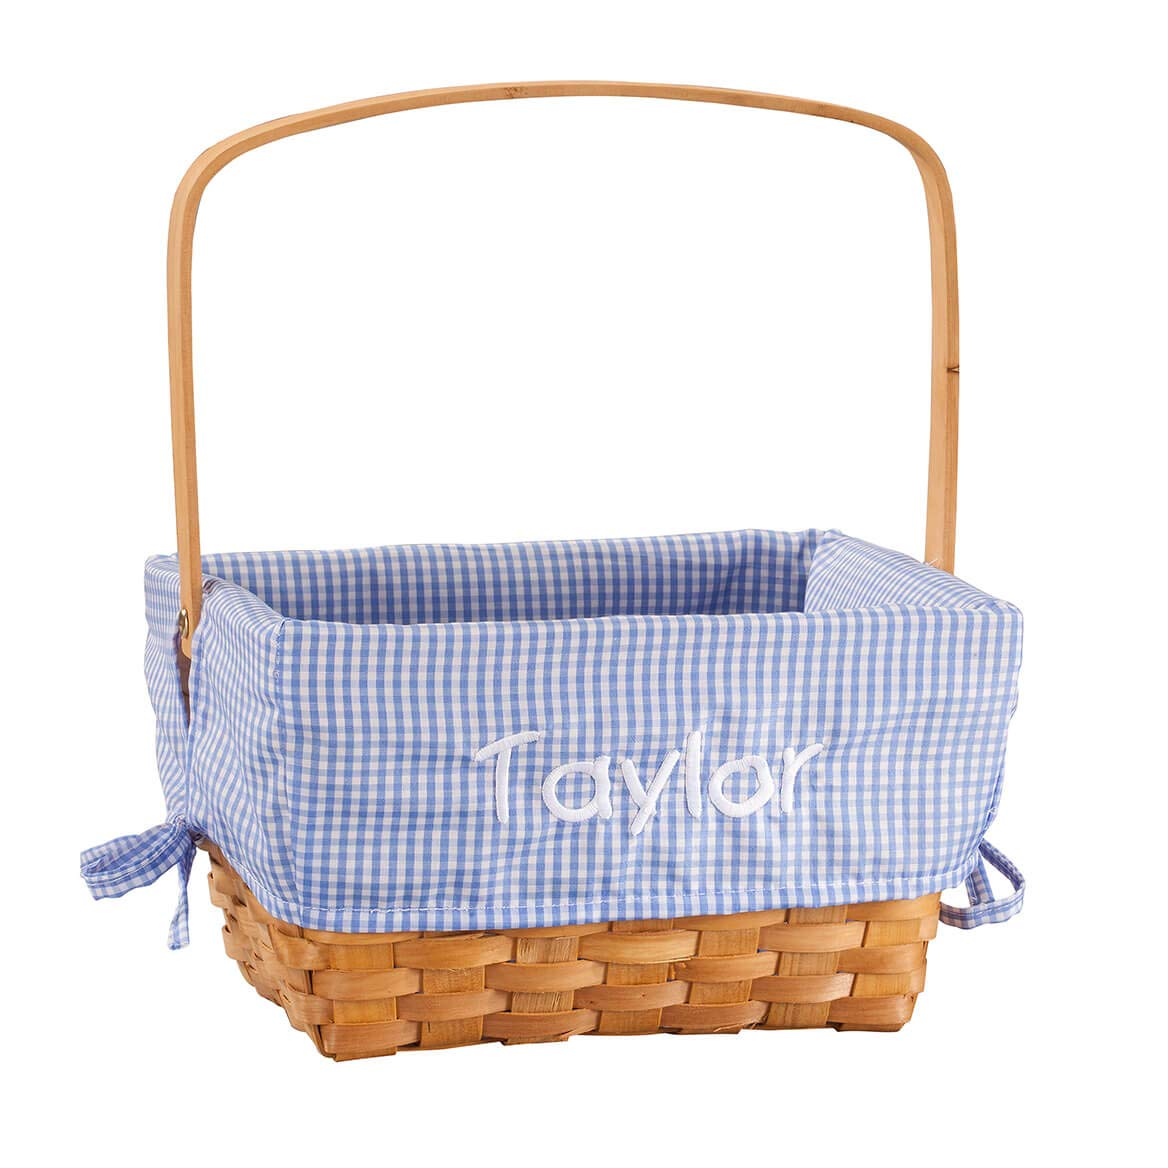 Fox Valley Traders Personalized Blue Gingham Wicker Easter Basket